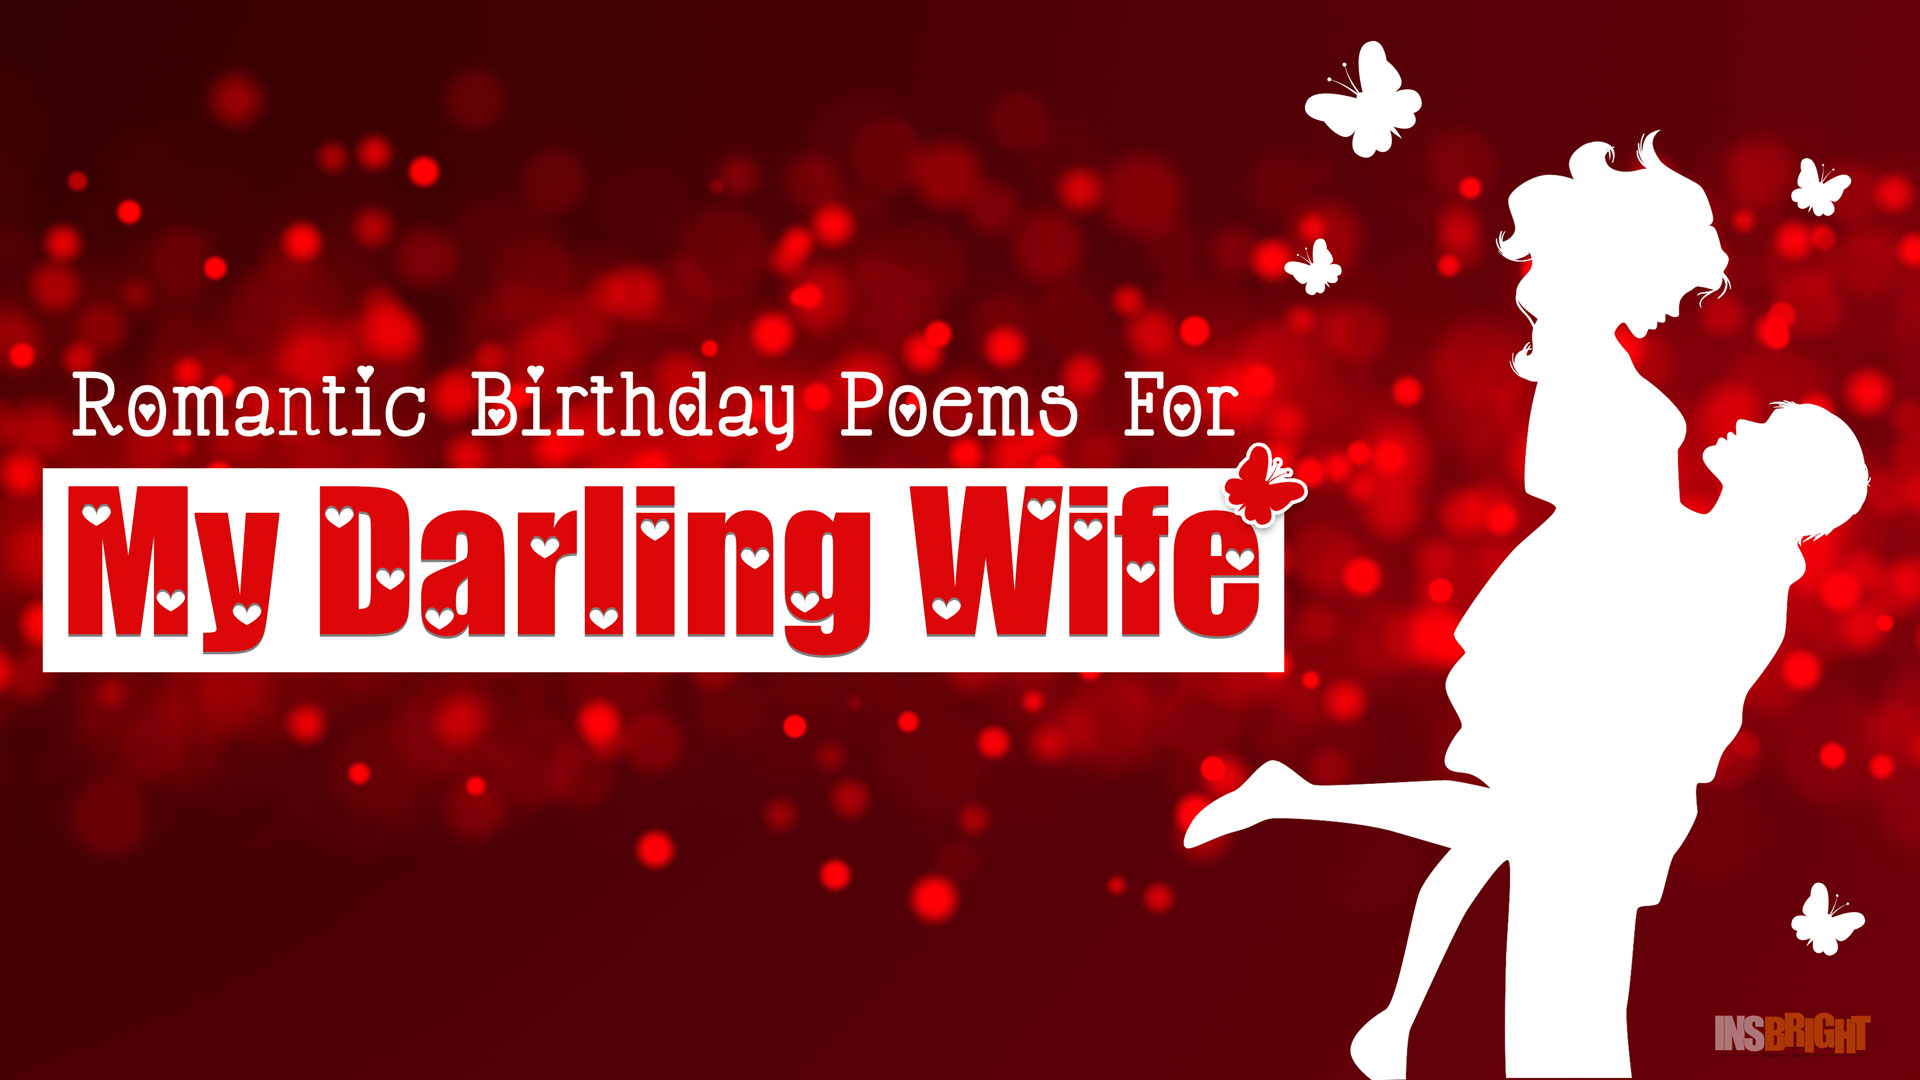 romantic birthday wallpaper ; birthday-poetry-for-wife-insbright